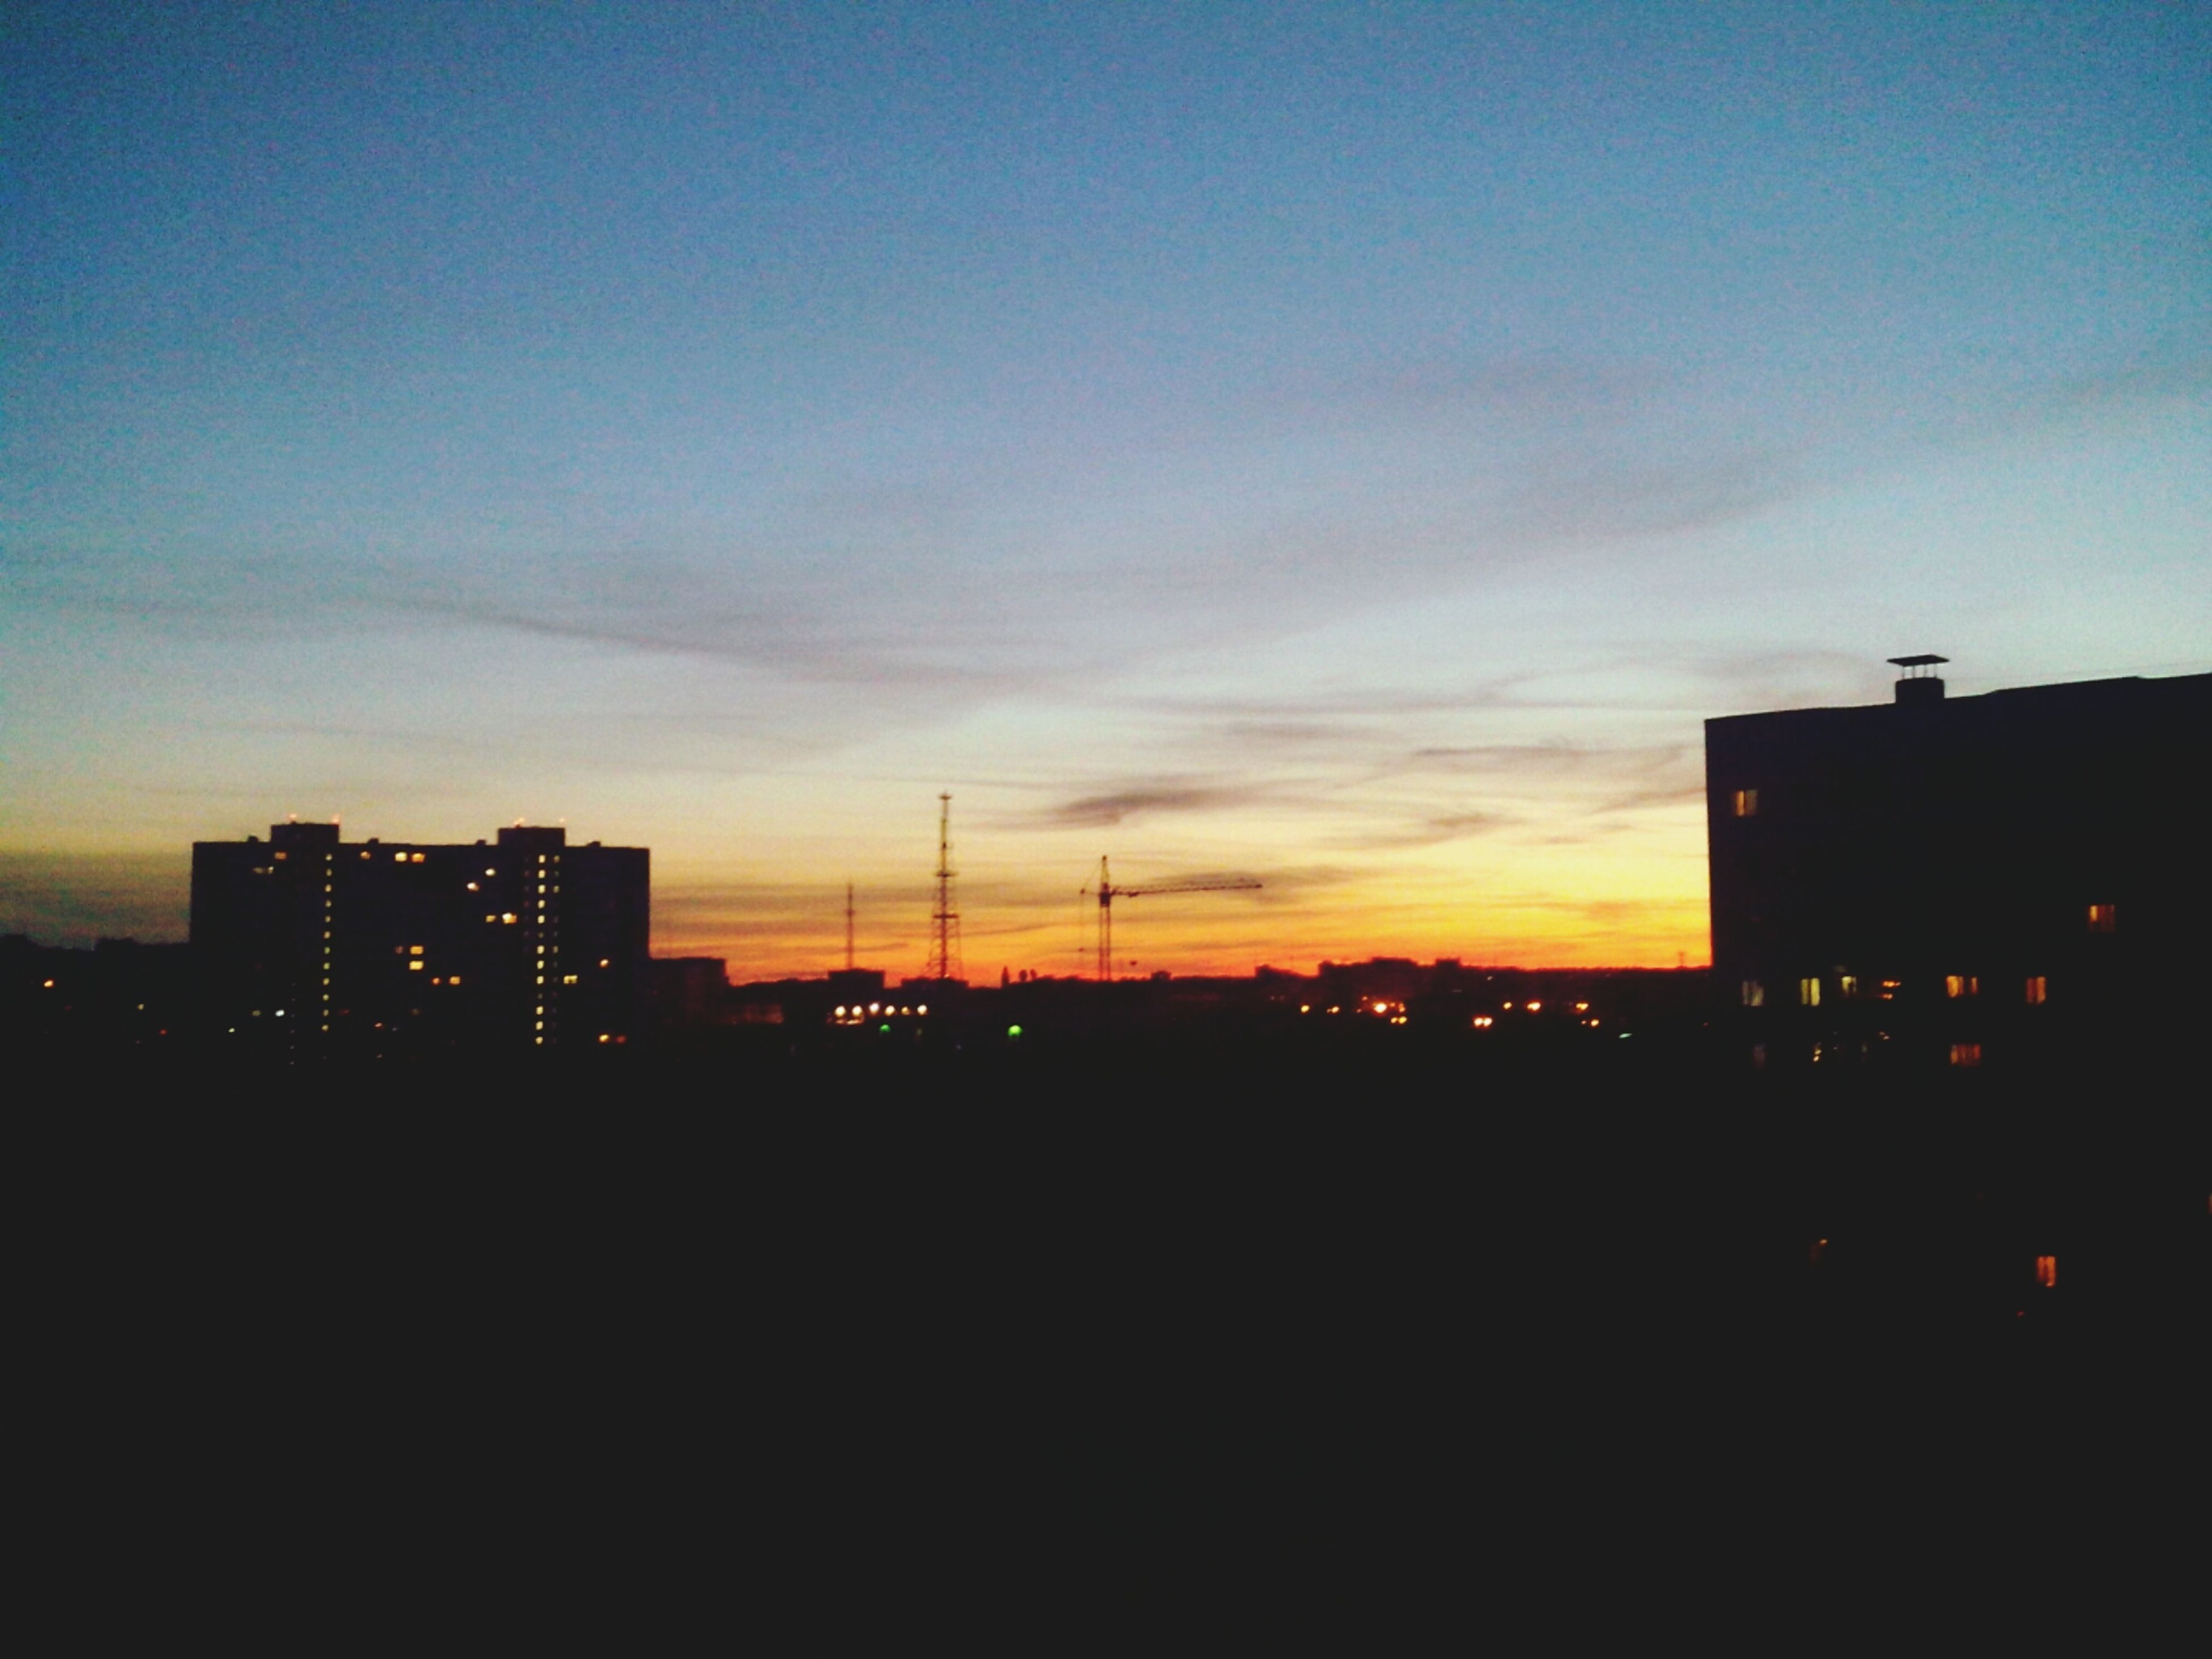 silhouette, building exterior, sunset, architecture, built structure, city, sky, copy space, dark, building, residential structure, dusk, residential building, cityscape, orange color, outdoors, no people, house, outline, residential district